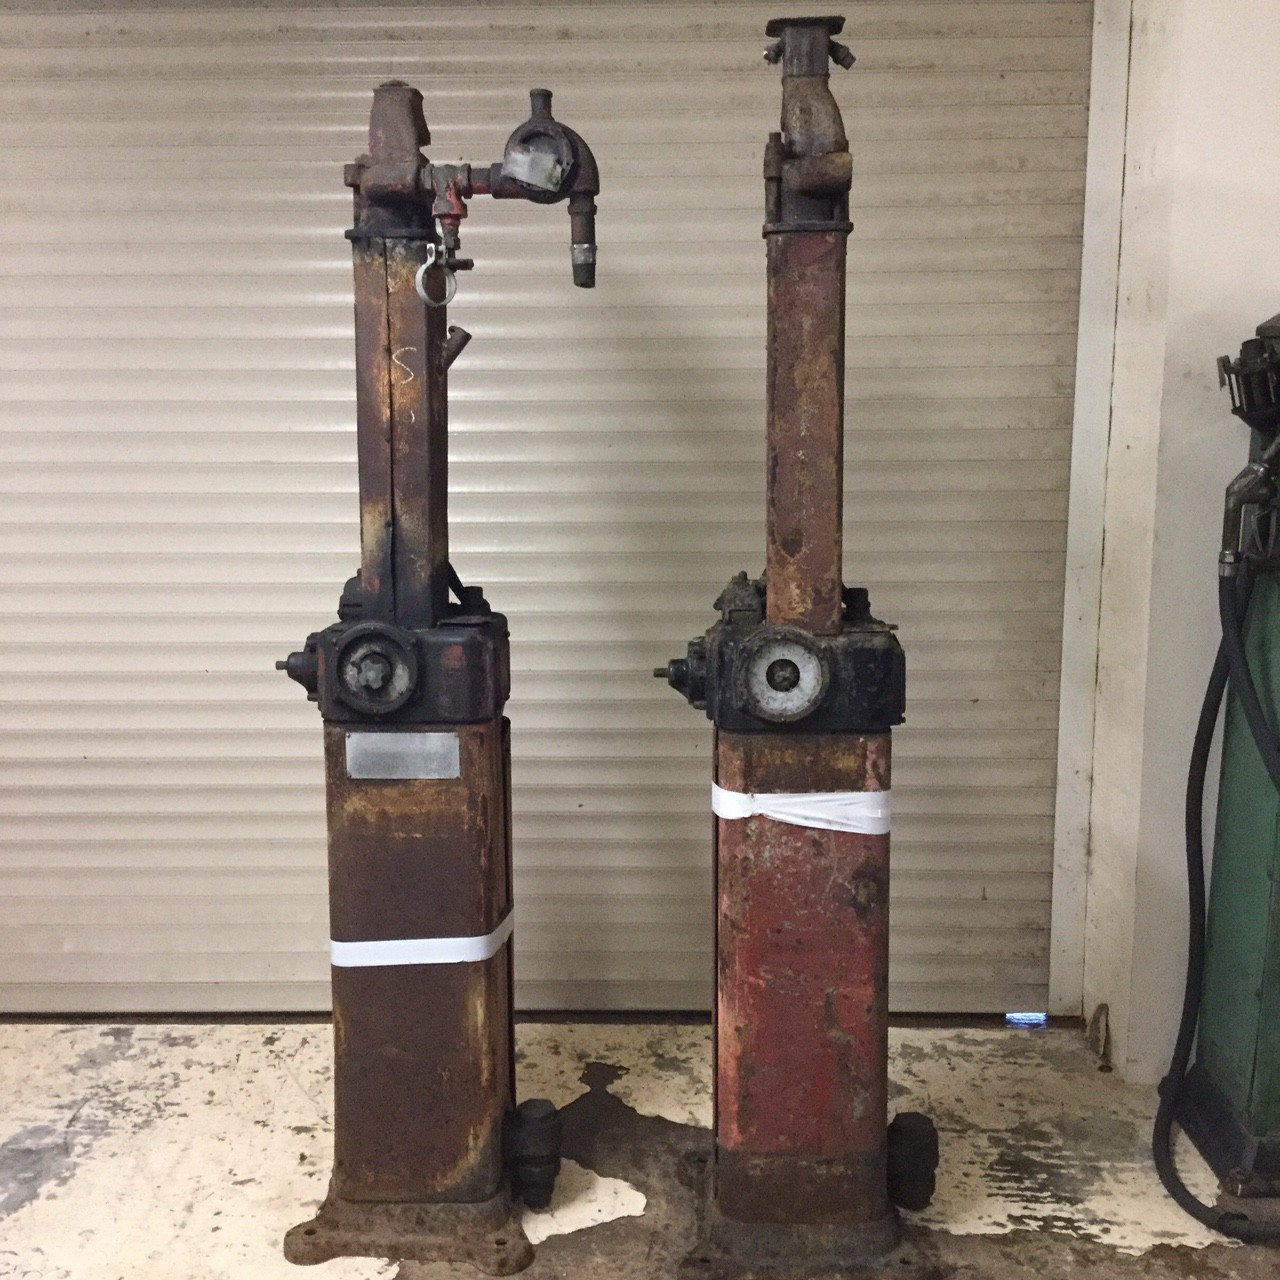 1922 Bowser Chief Sentry Petrol Pumps